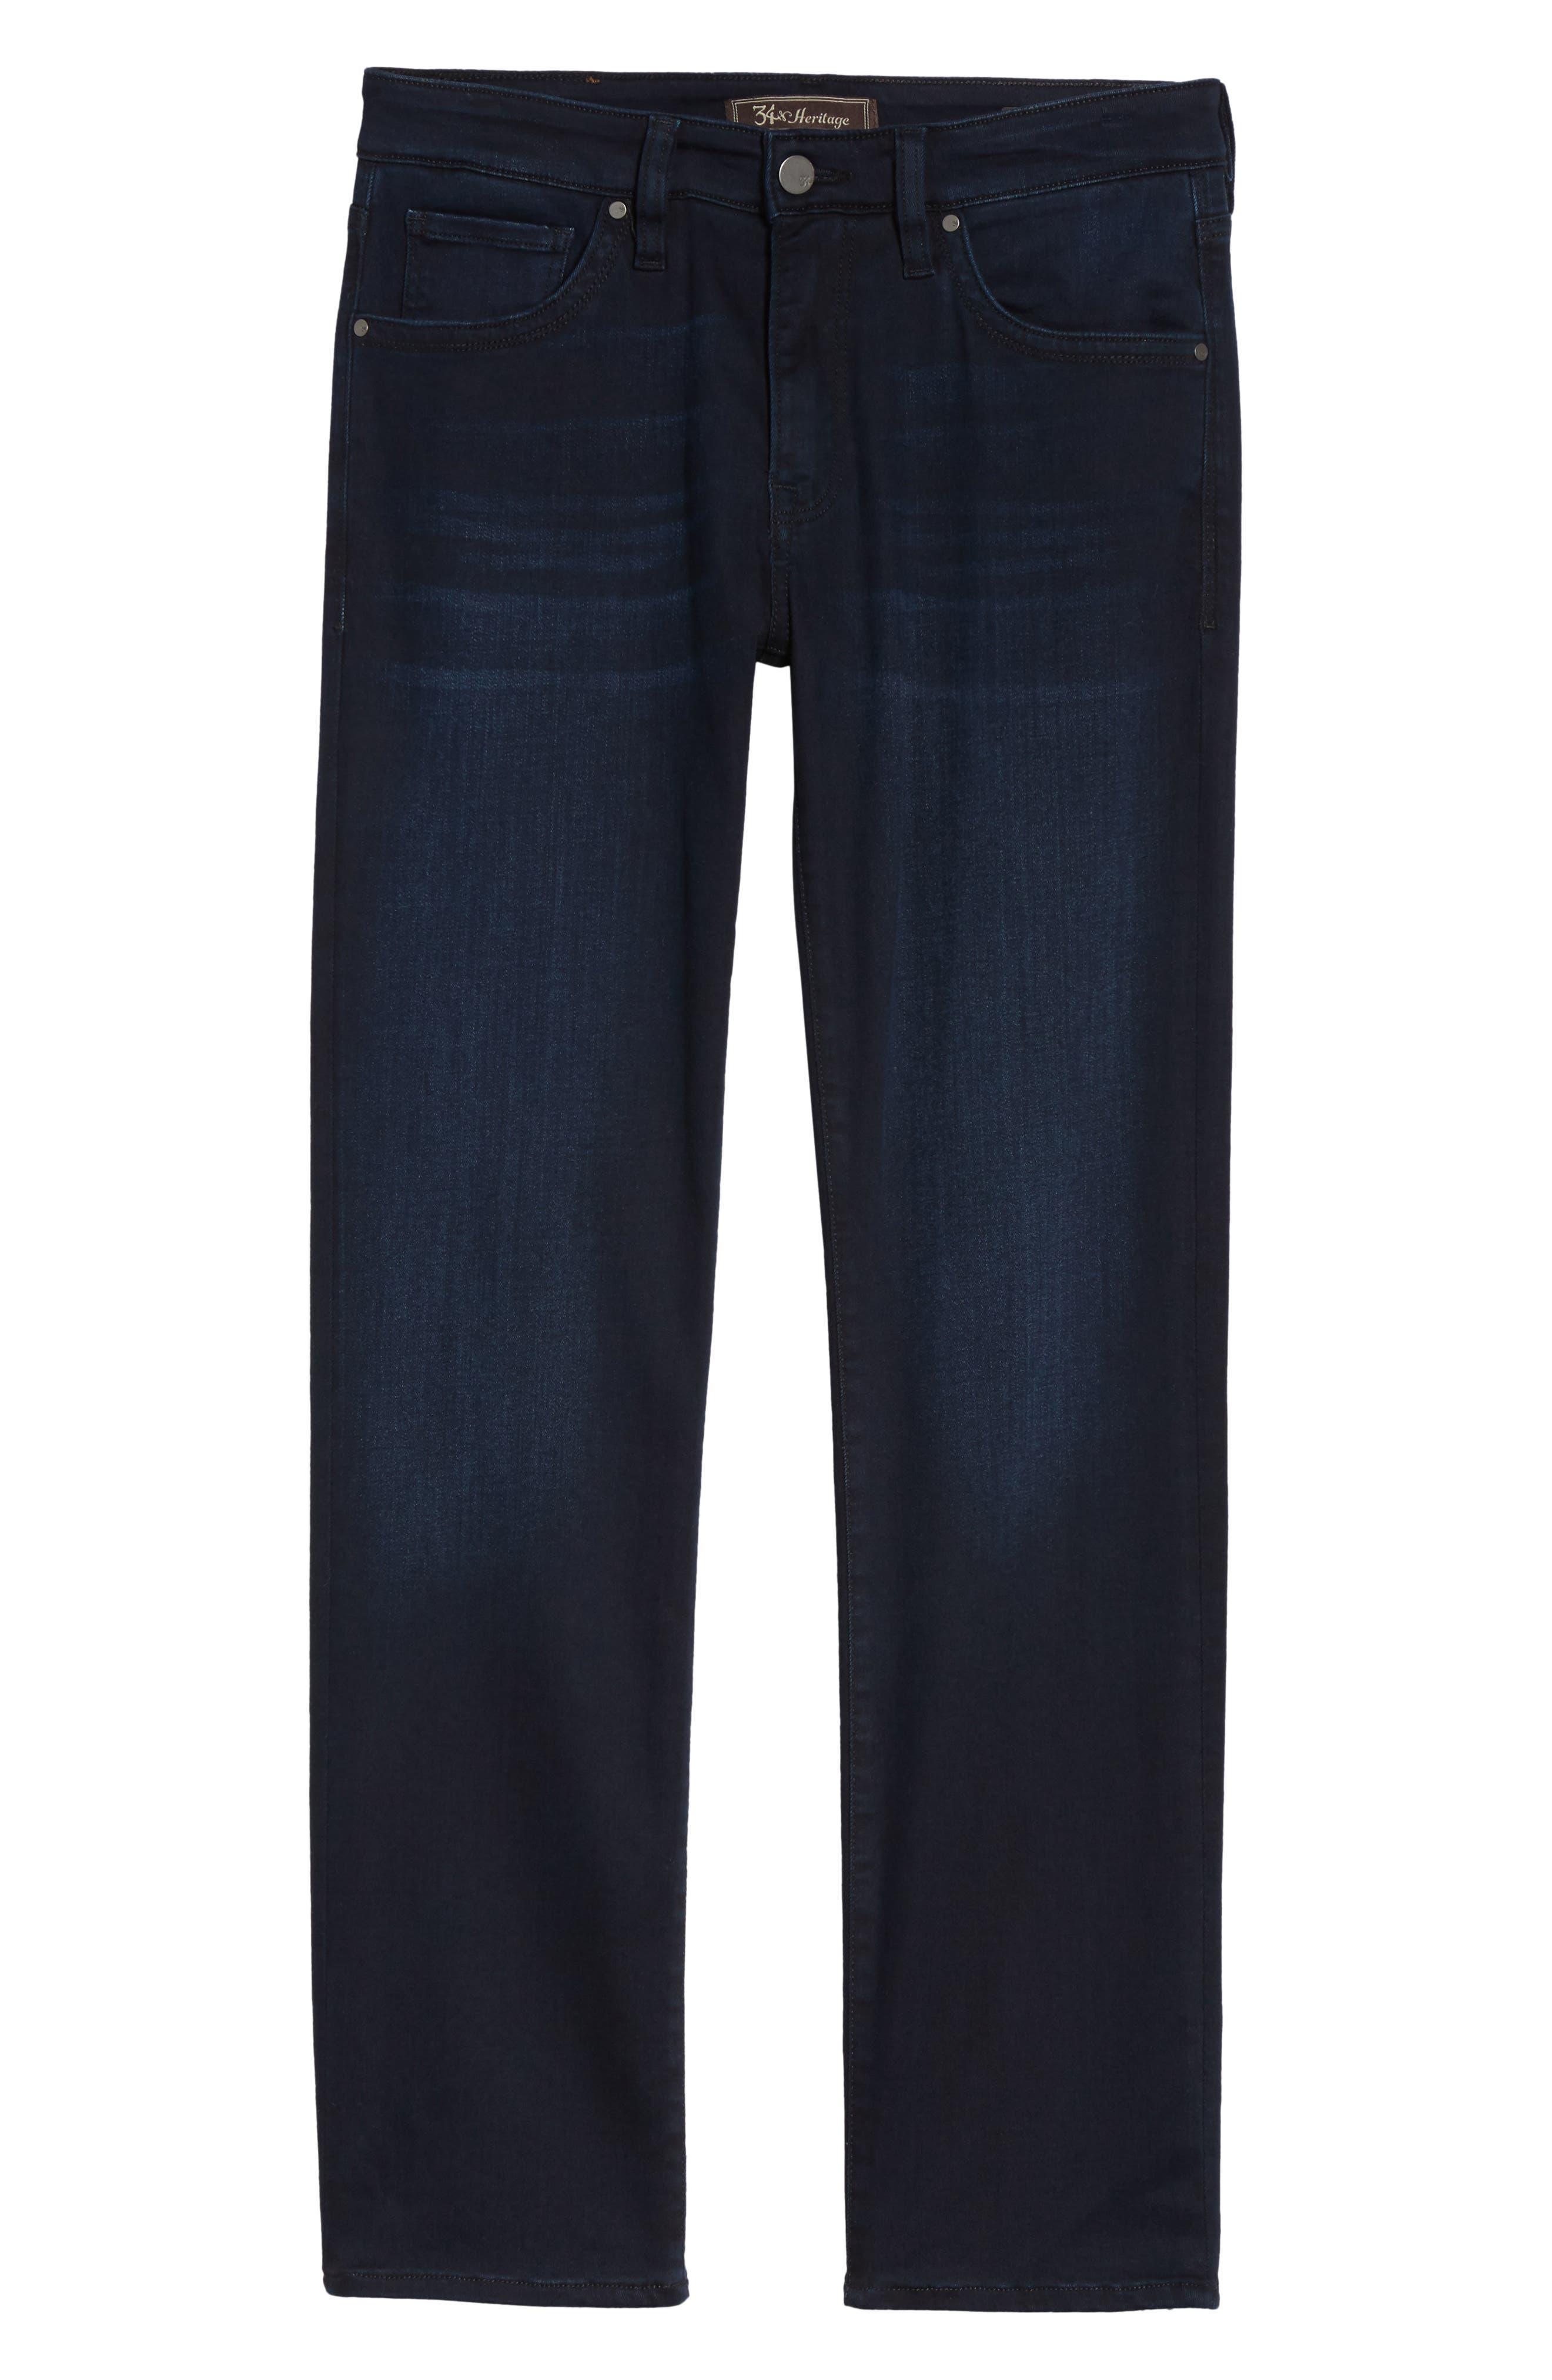 Courage Straight Fit Jeans,                             Alternate thumbnail 6, color,                             401